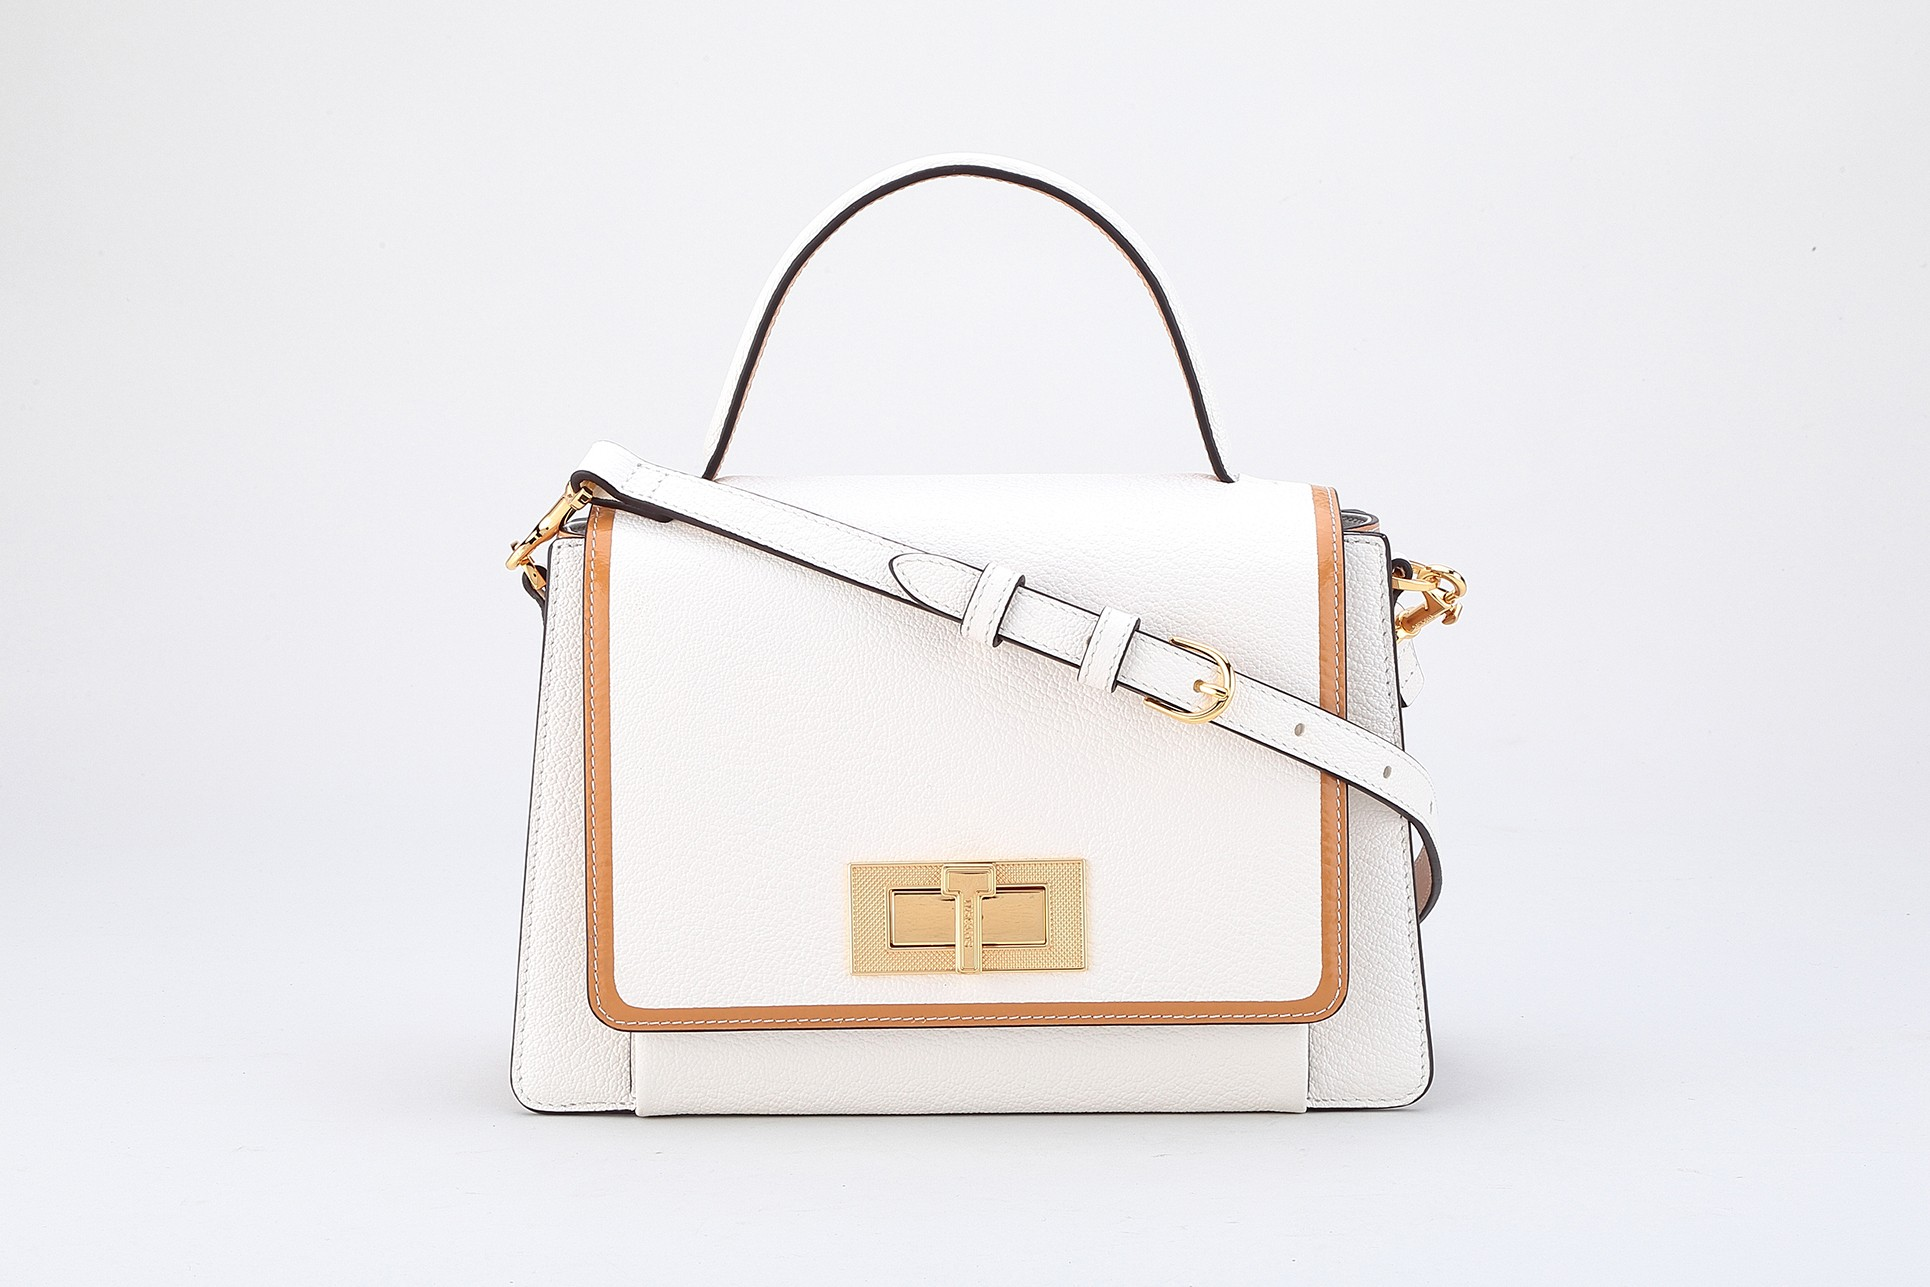 VERONA Satchel Bag